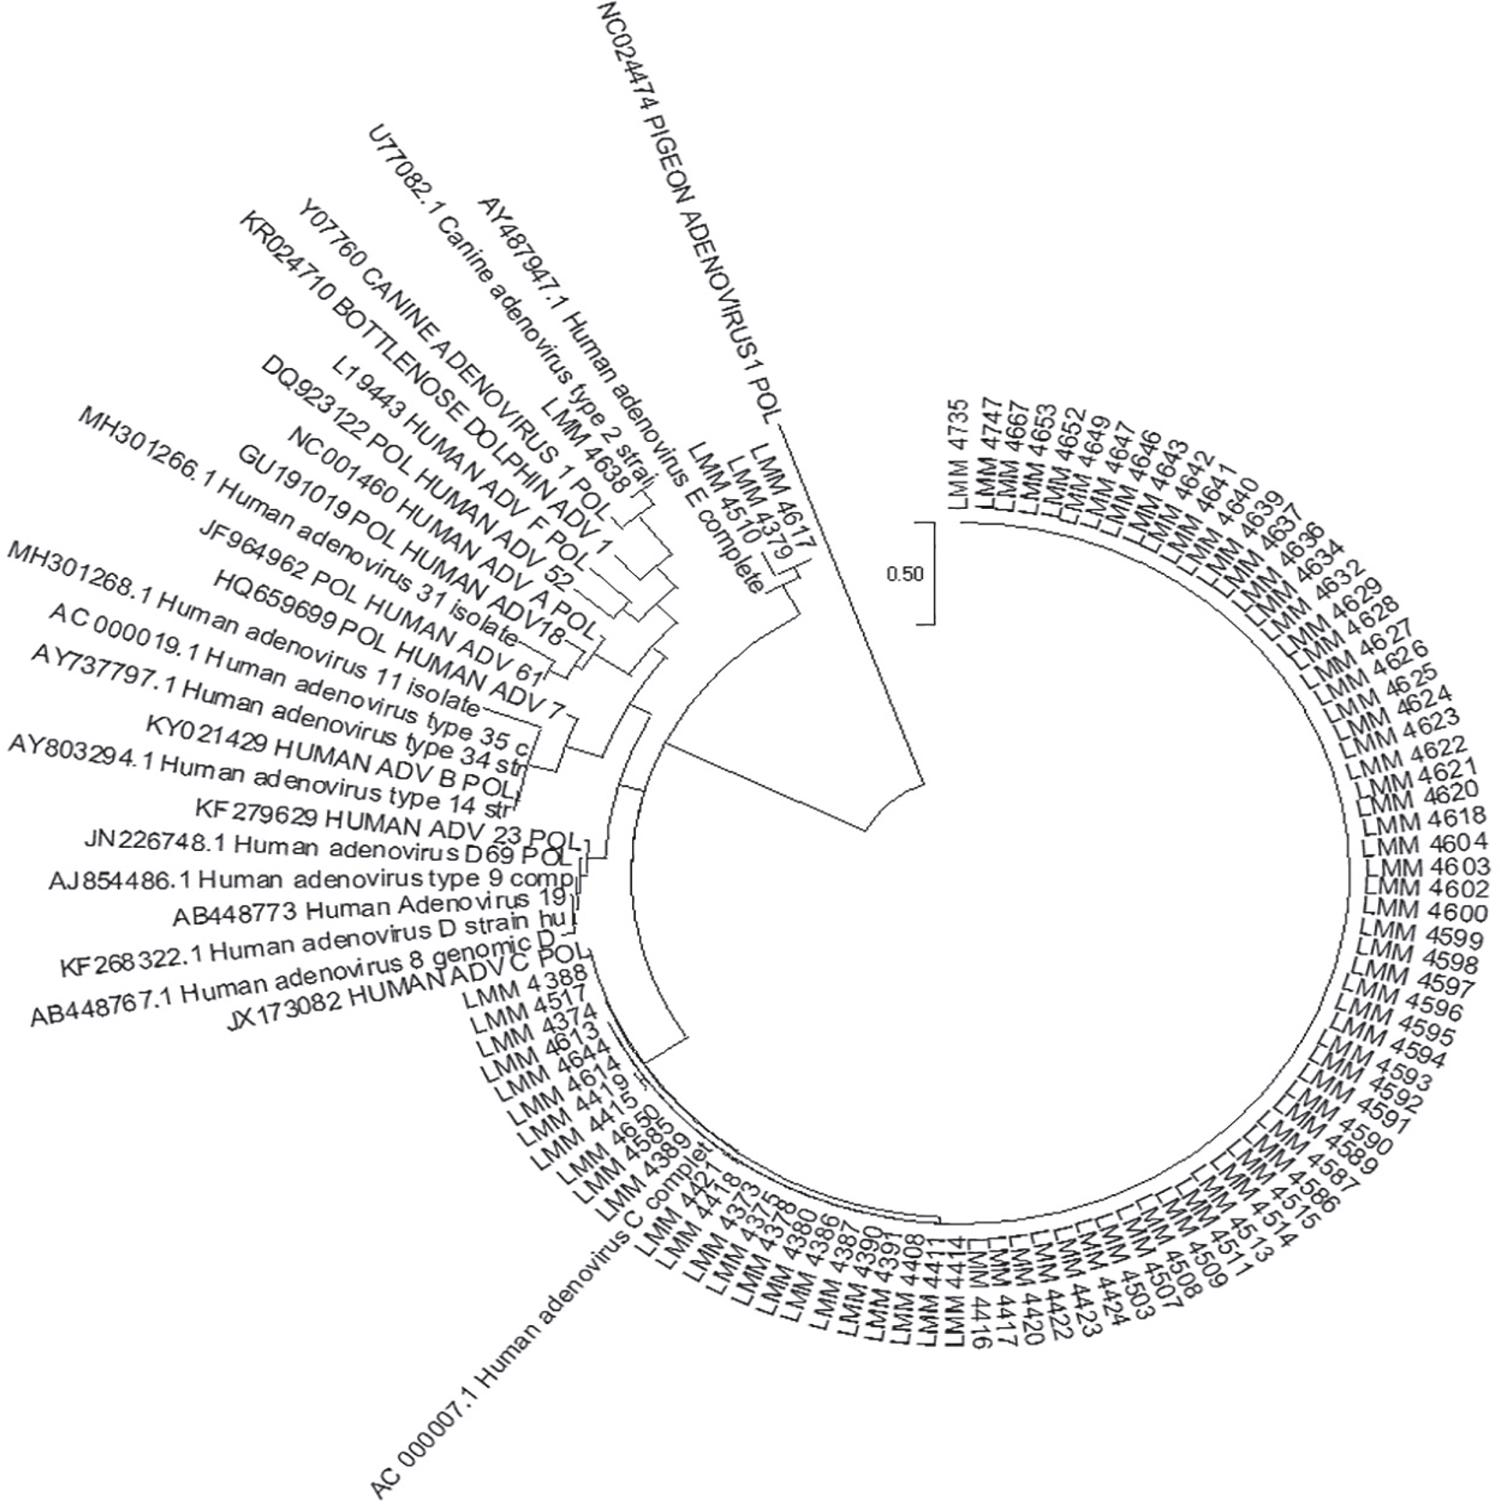 Phylogenetic tree of ADV-positive samples by the Neighbor-Joining method with the Kimura-2 model.